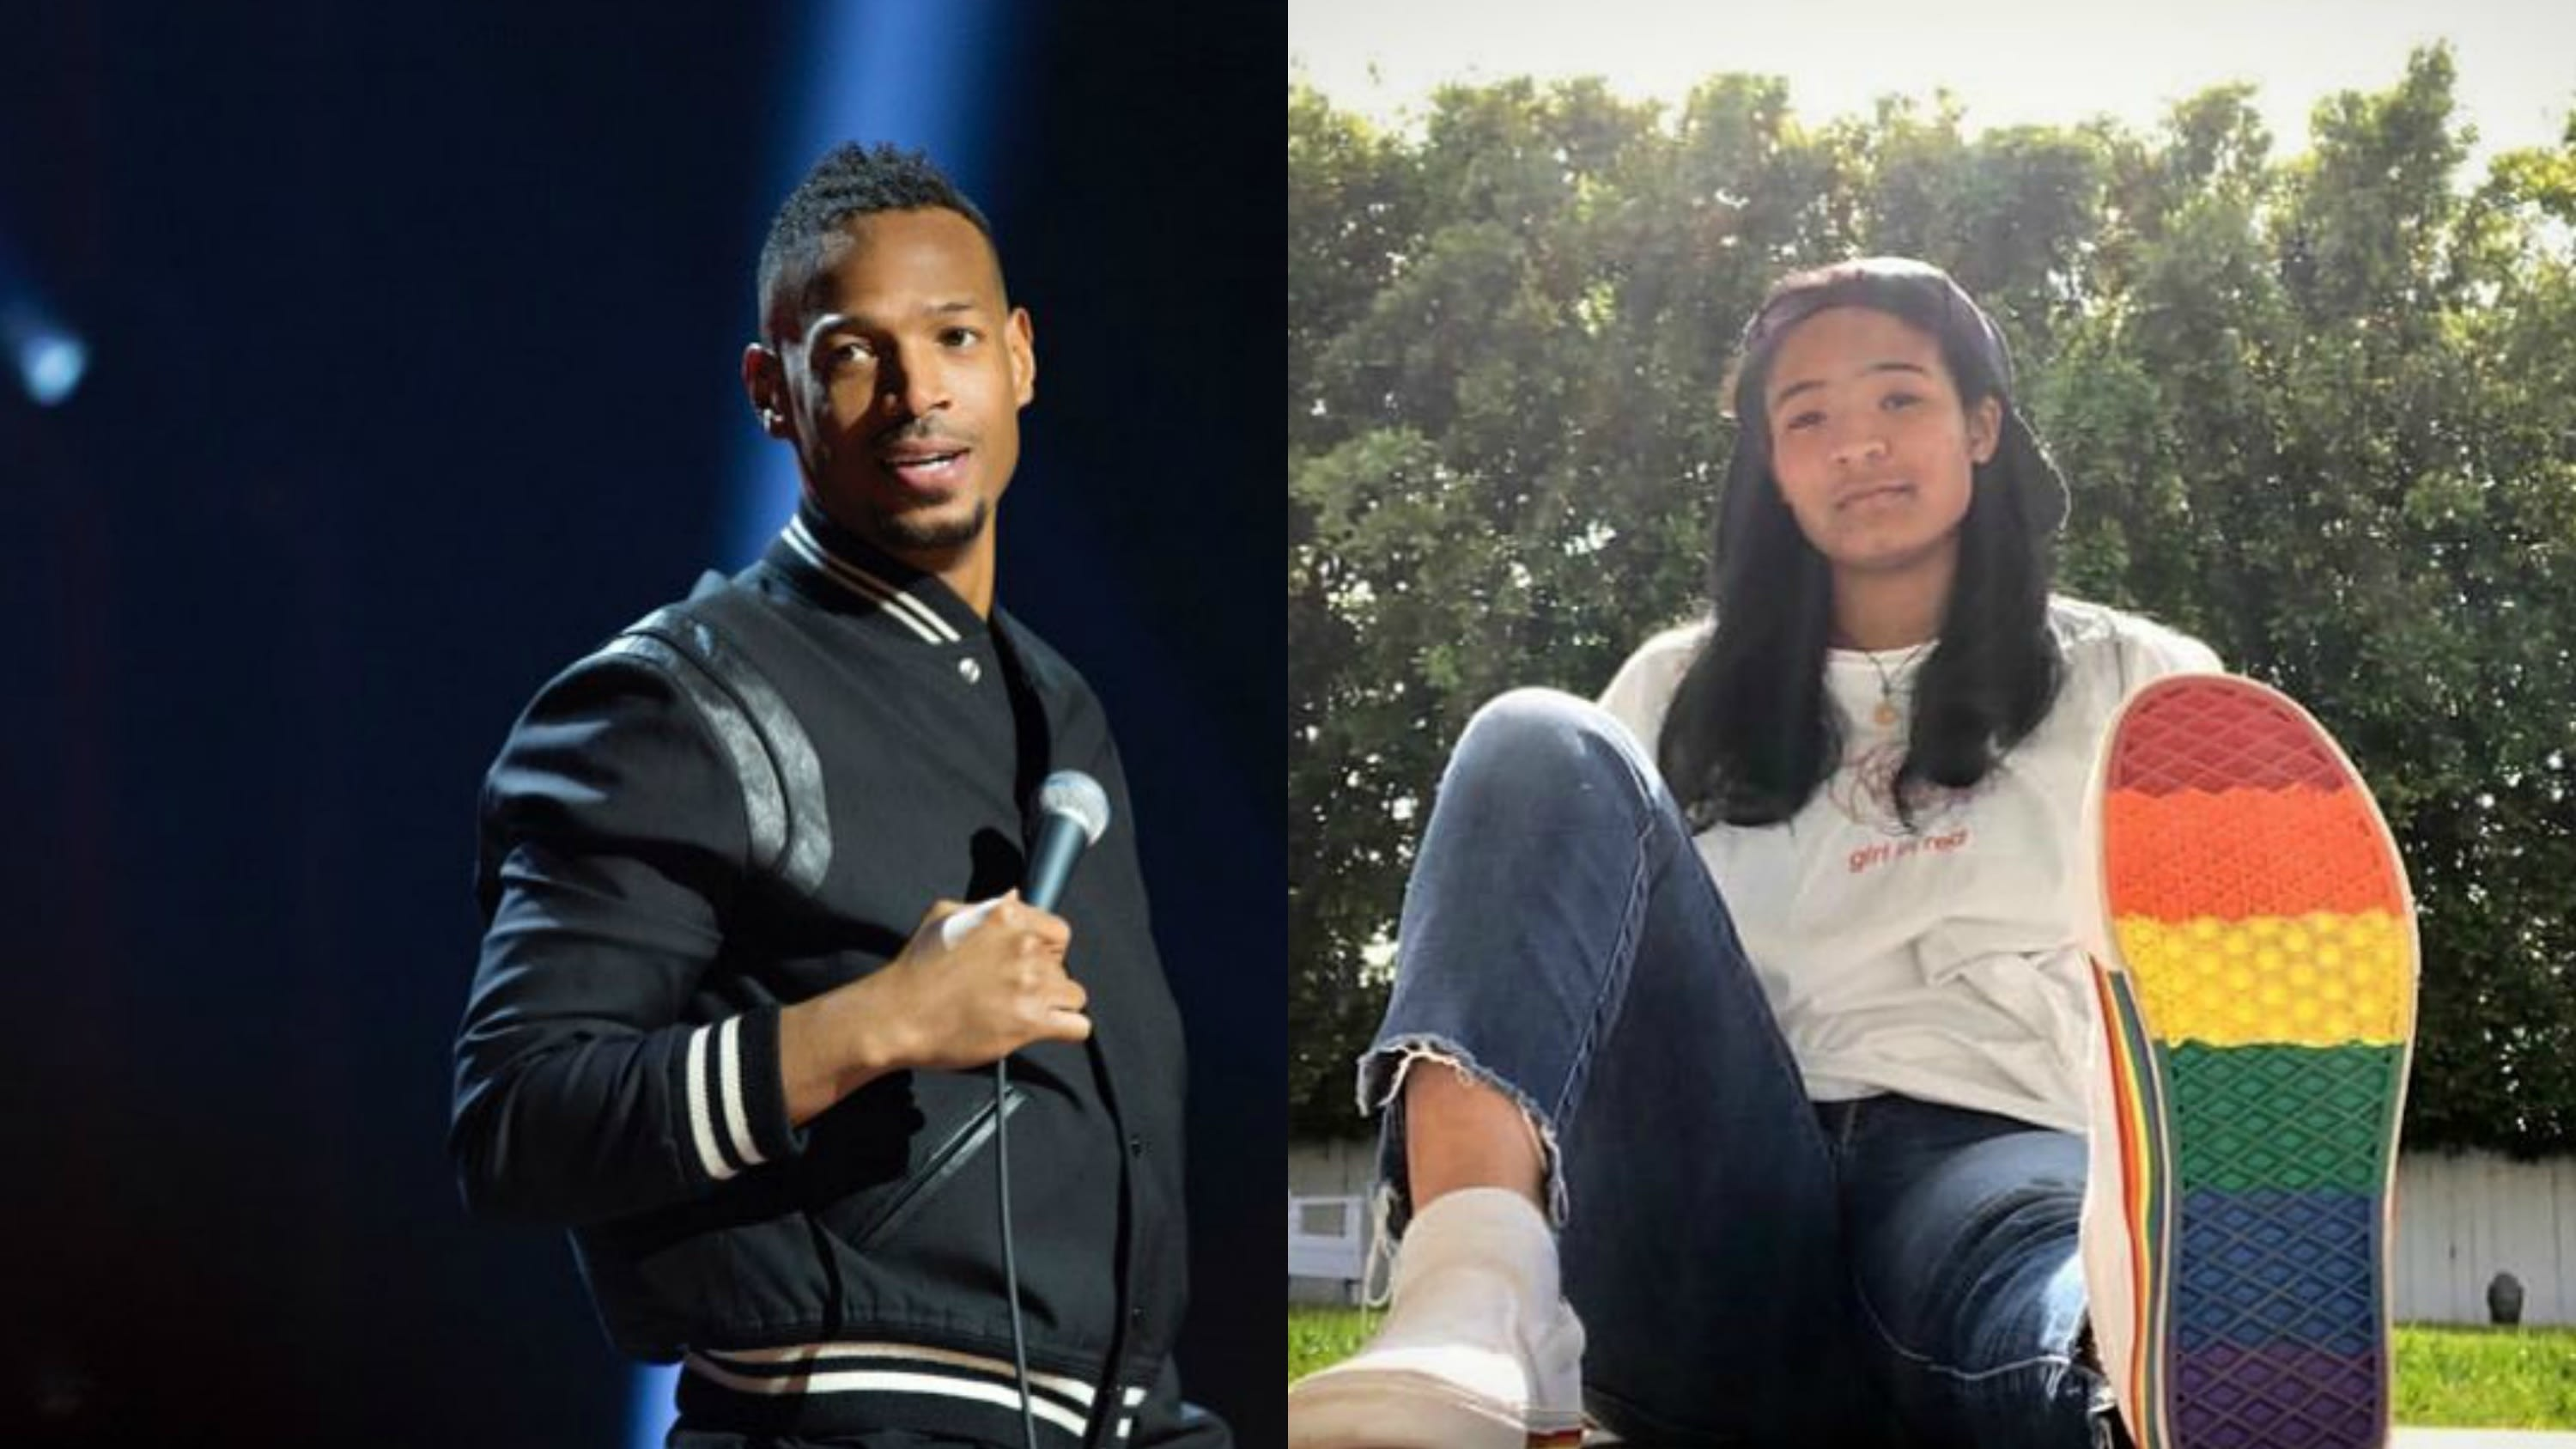 Marlon Wayans Lays Into Homophobes Trying To Spread Their Foolishness After He Posts Tribute To His Lesbian Daughter